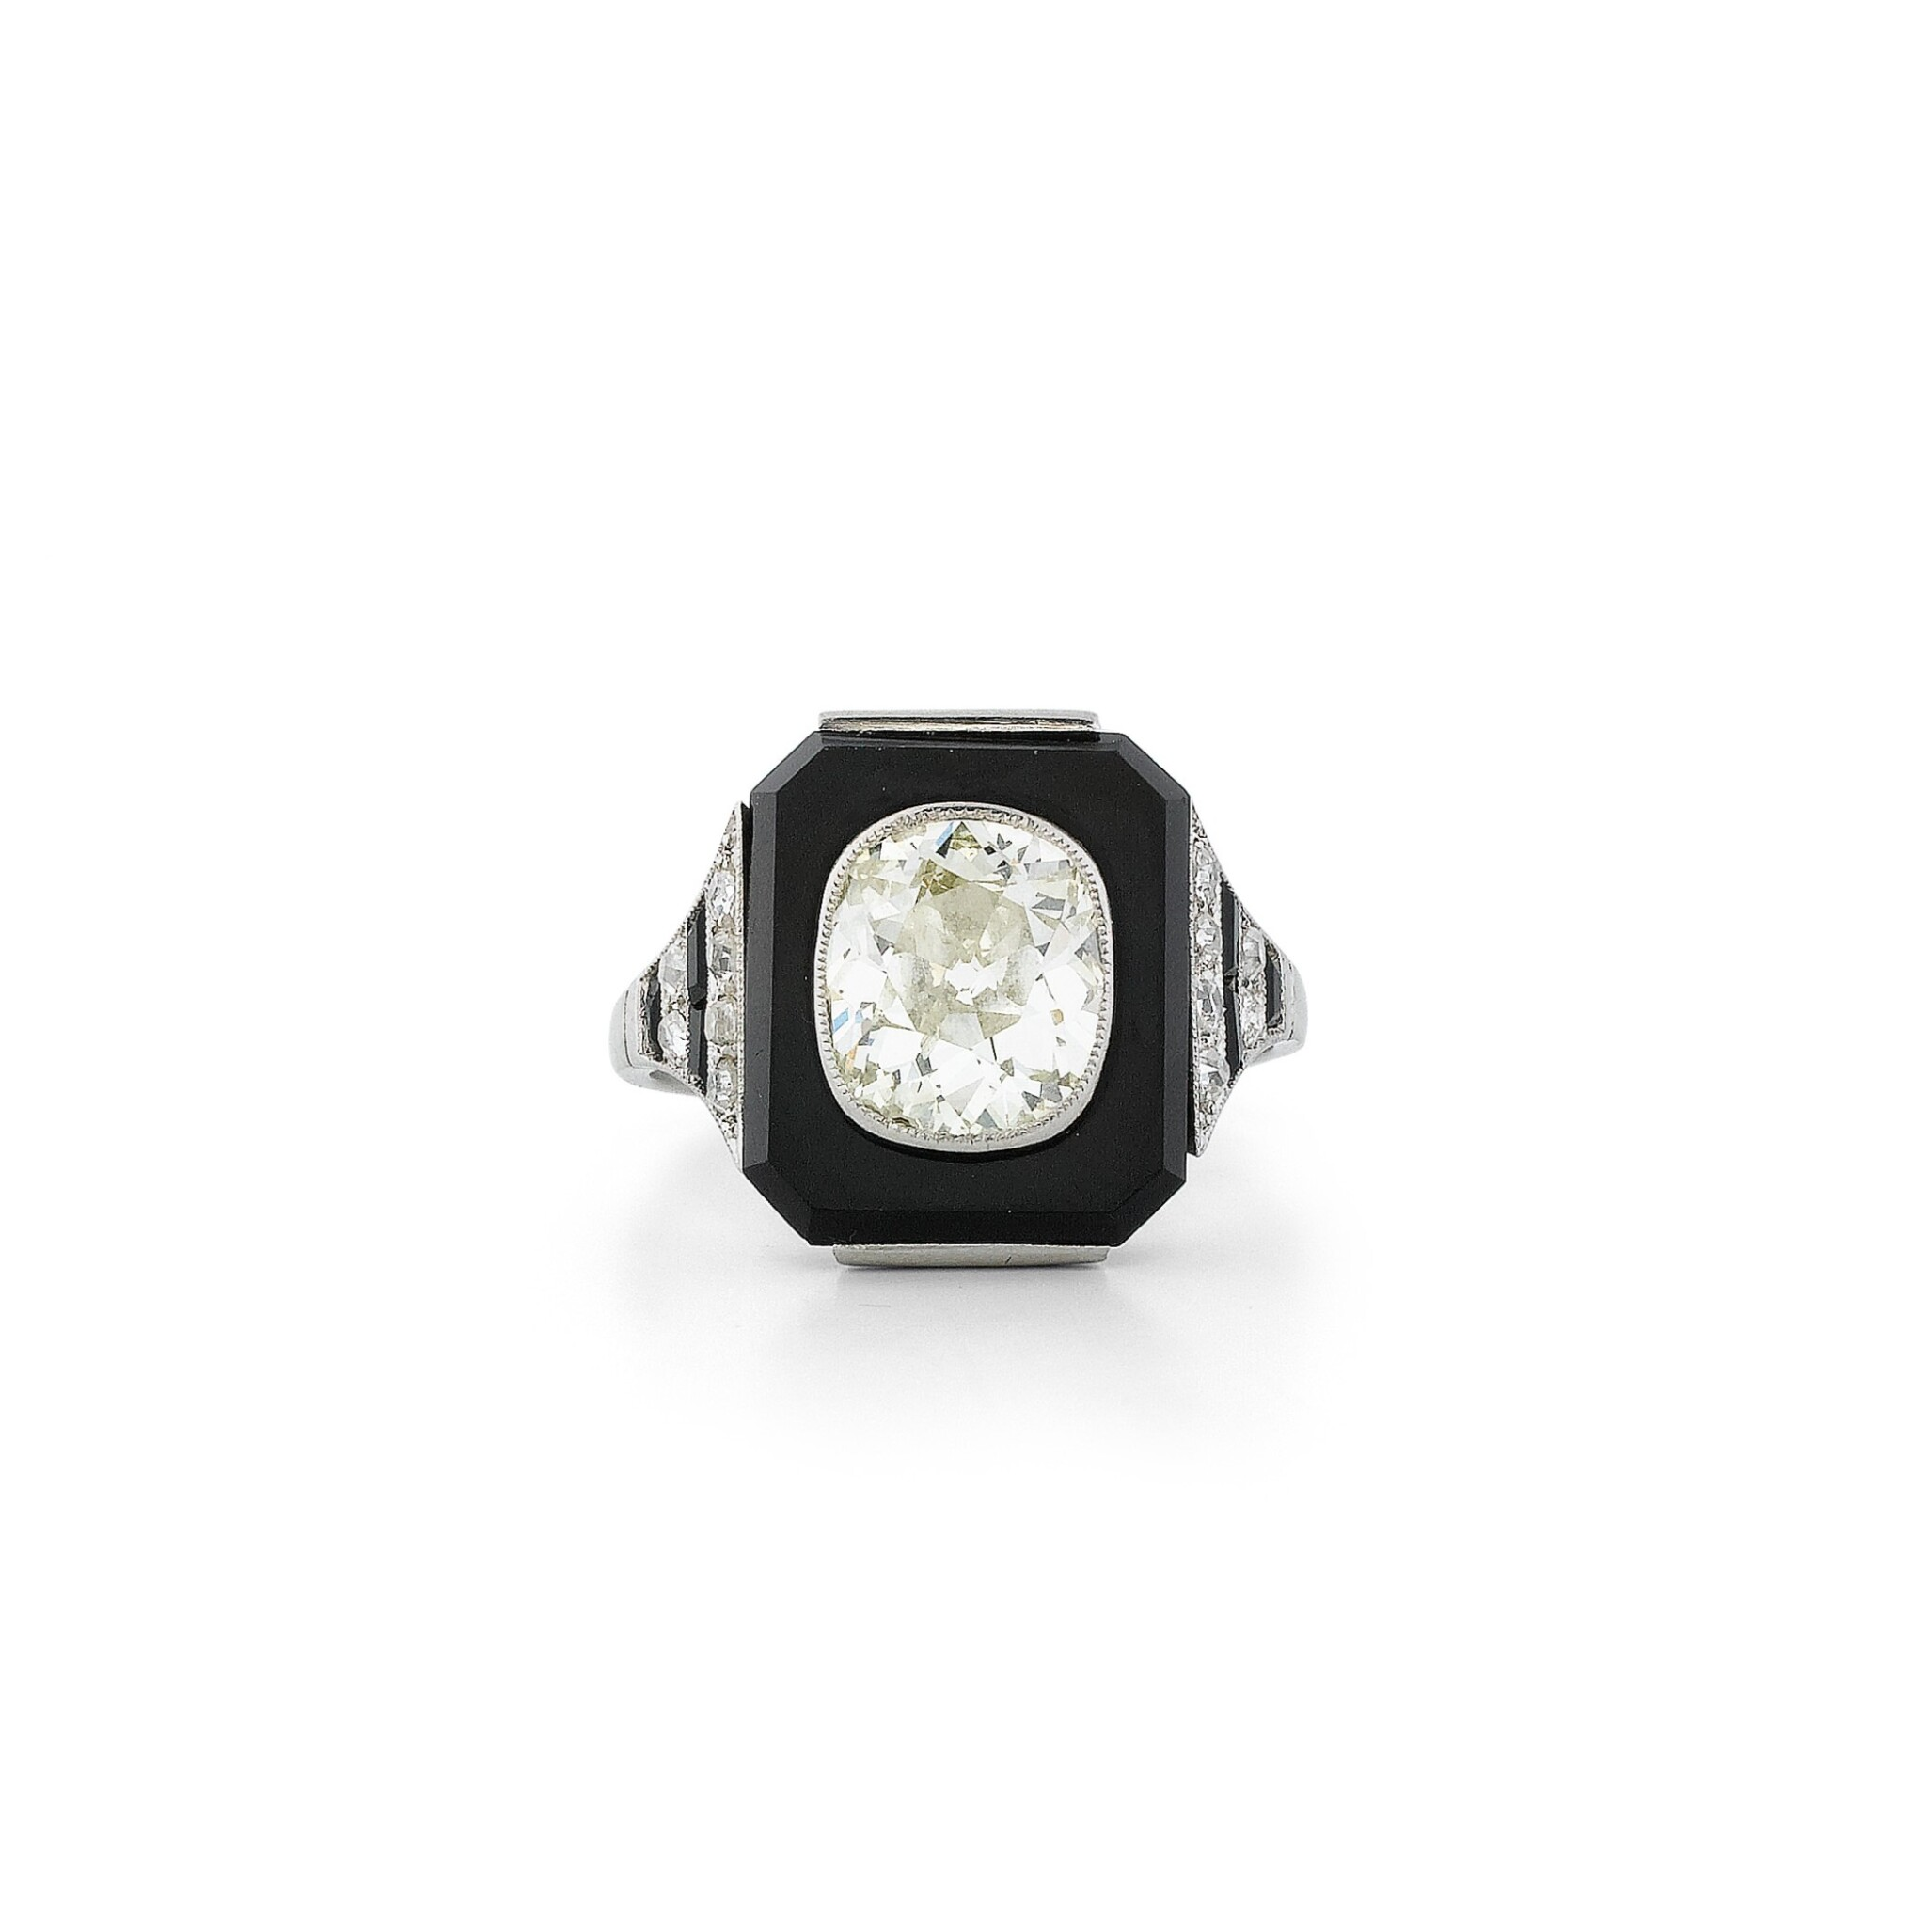 View full screen - View 1 of Lot 20. Bague onyx et diamant | Onyx and diamond ring.